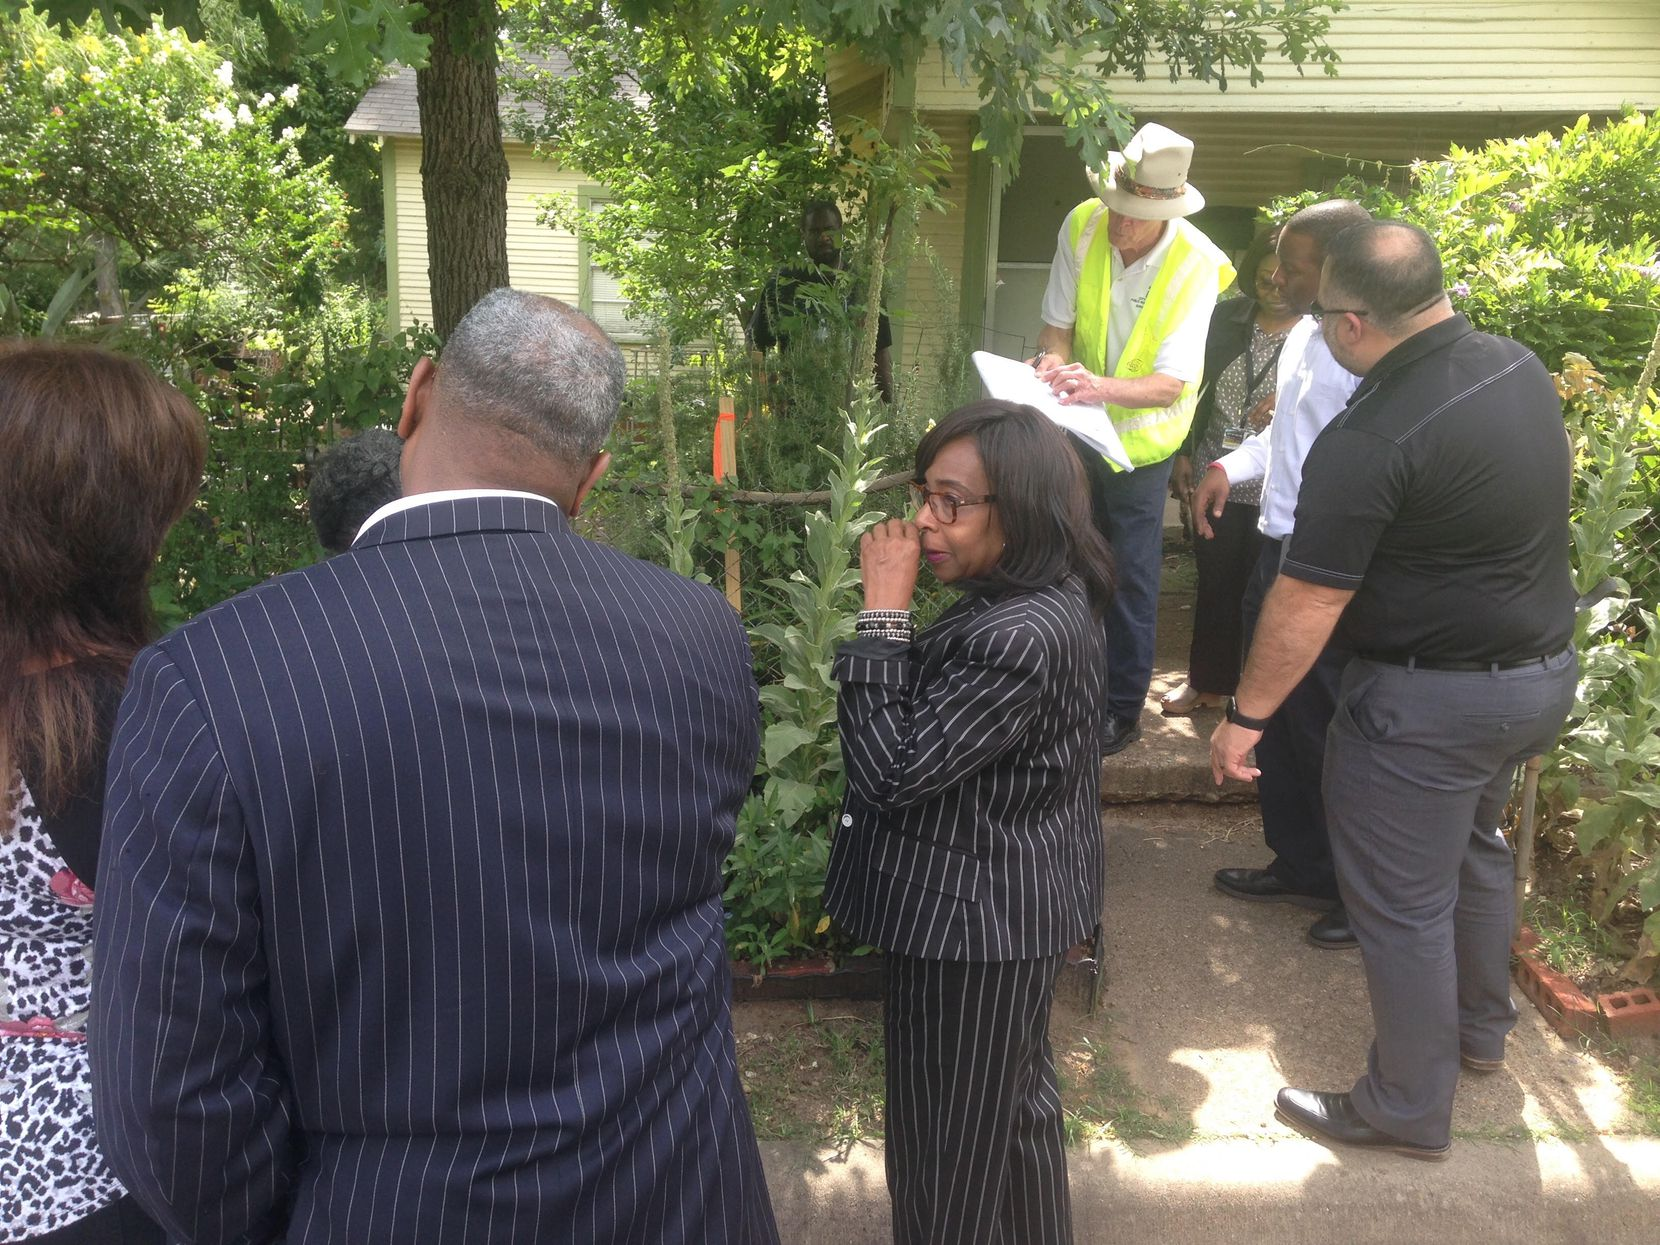 Council member Carolyn King Arnold (center) and some 20 city staffers met at Diane Wynn's house Thursday morning to discuss how much of her land the city needs for the improvements coming to The Bottom.